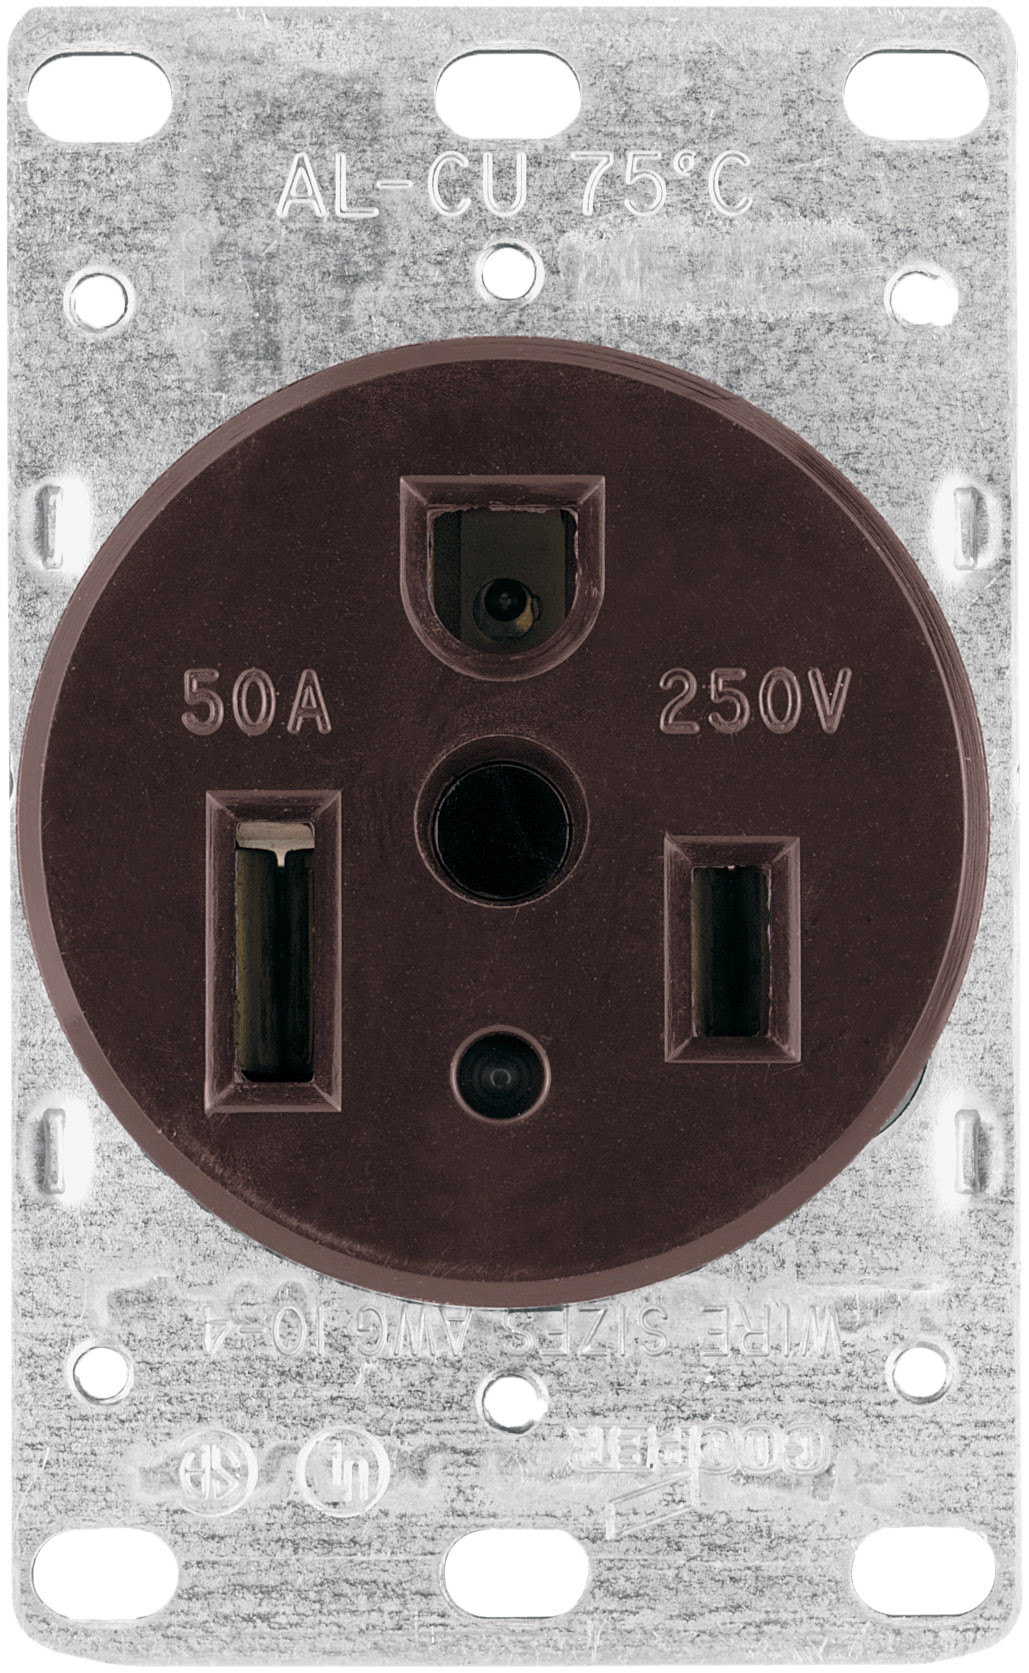 cooper wiring 1254 box 50 amp 3 wire grounded power receptacle  star wiring receptacles #4